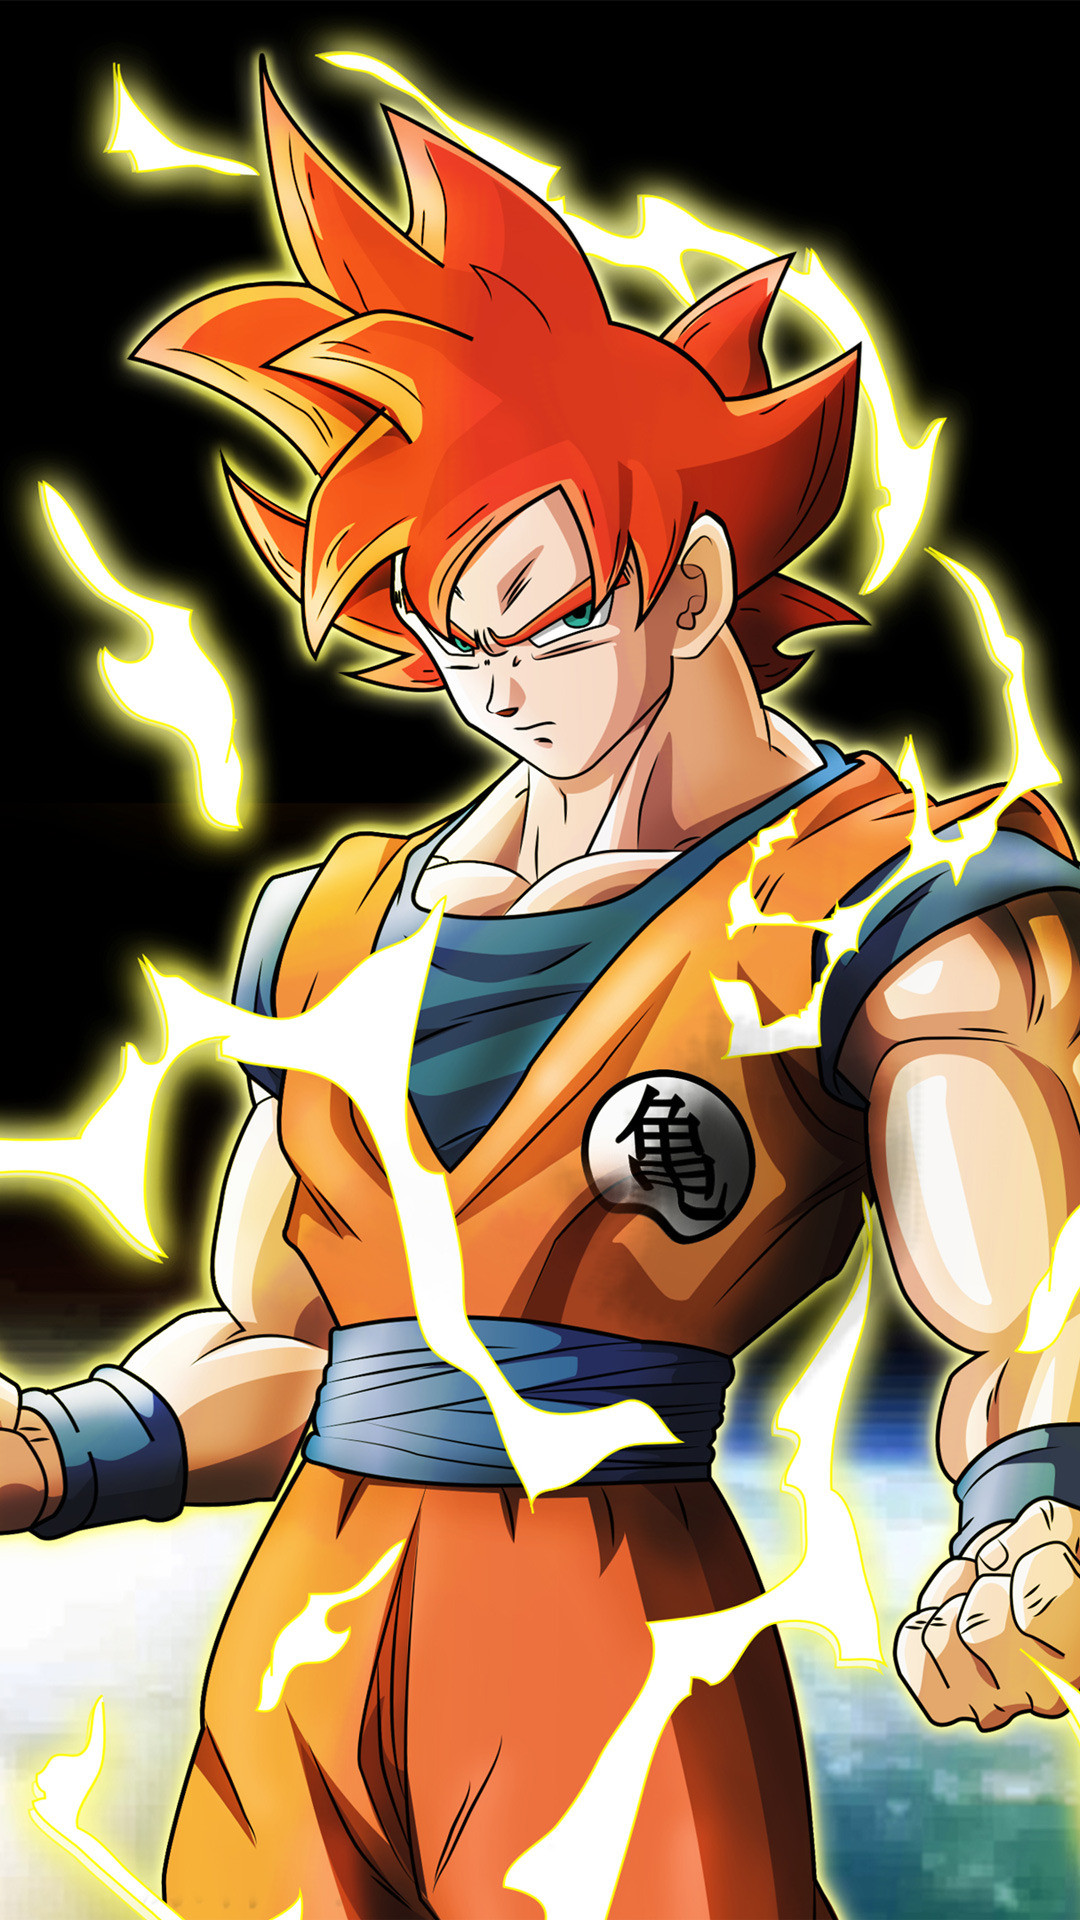 Cell dbz wallpapers wallpapertag - Anime mobile wallpaper ...